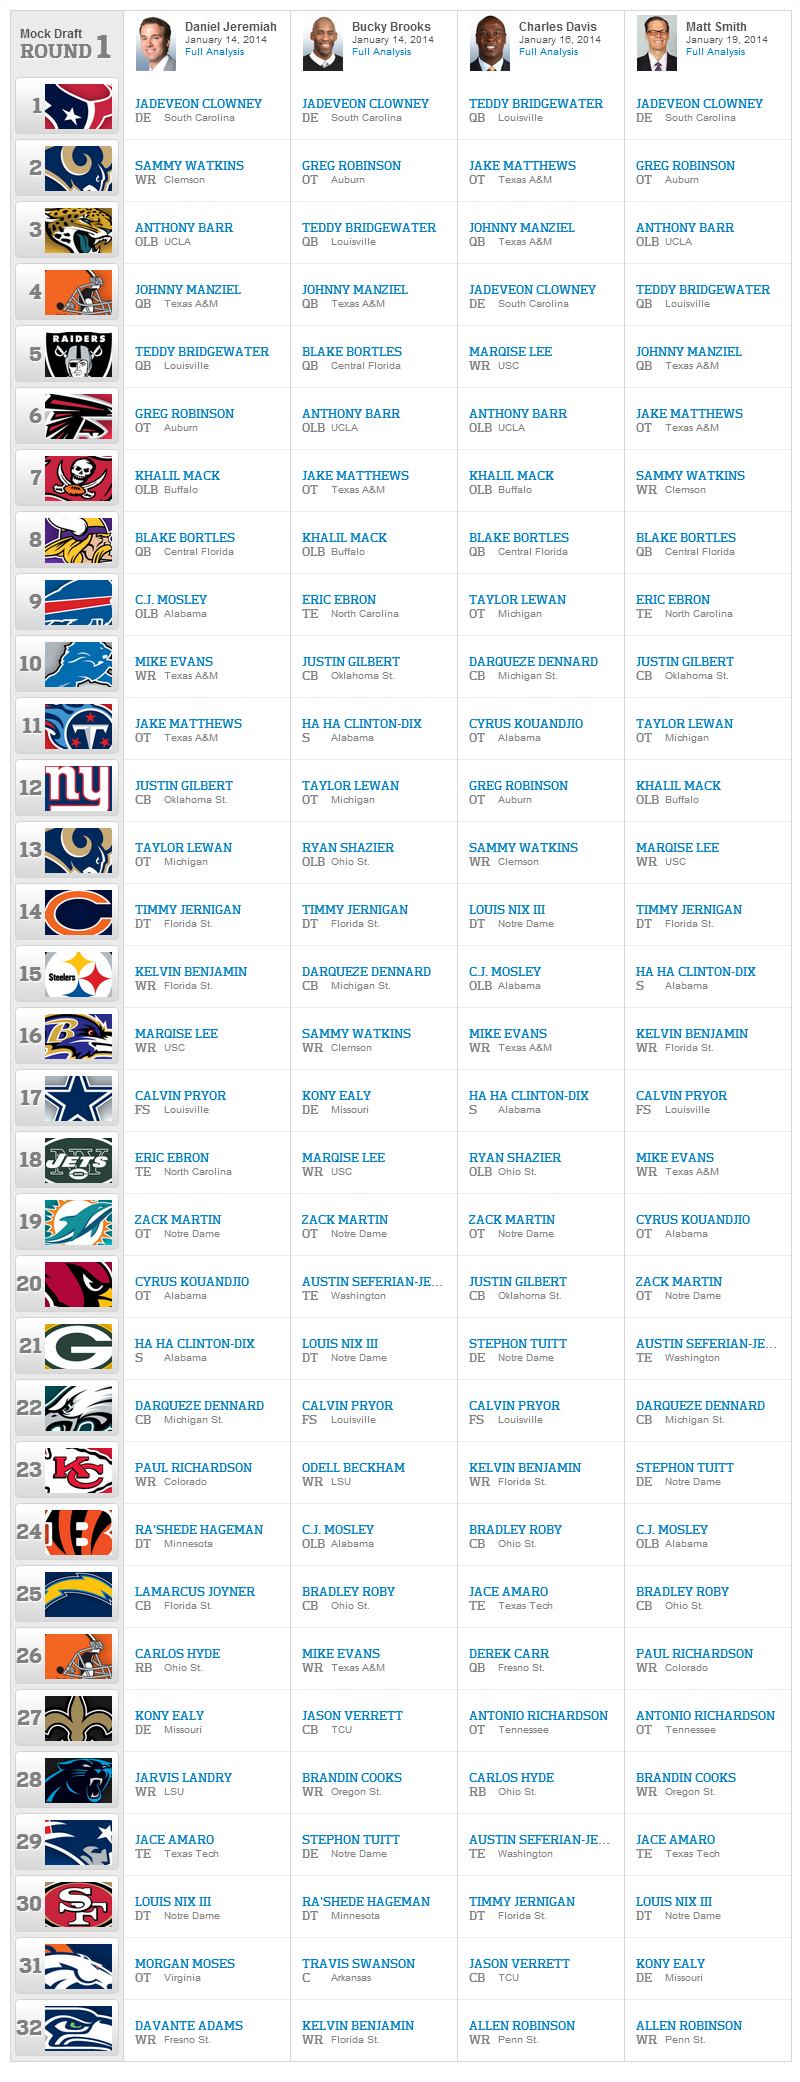 2014 NFL Mock Draft Central - ROAD TO THE 2014 NFL DRAFT 2014 - Dallas Cowboys 2014 Mock Draft 1.0 - as of 01-26-2014